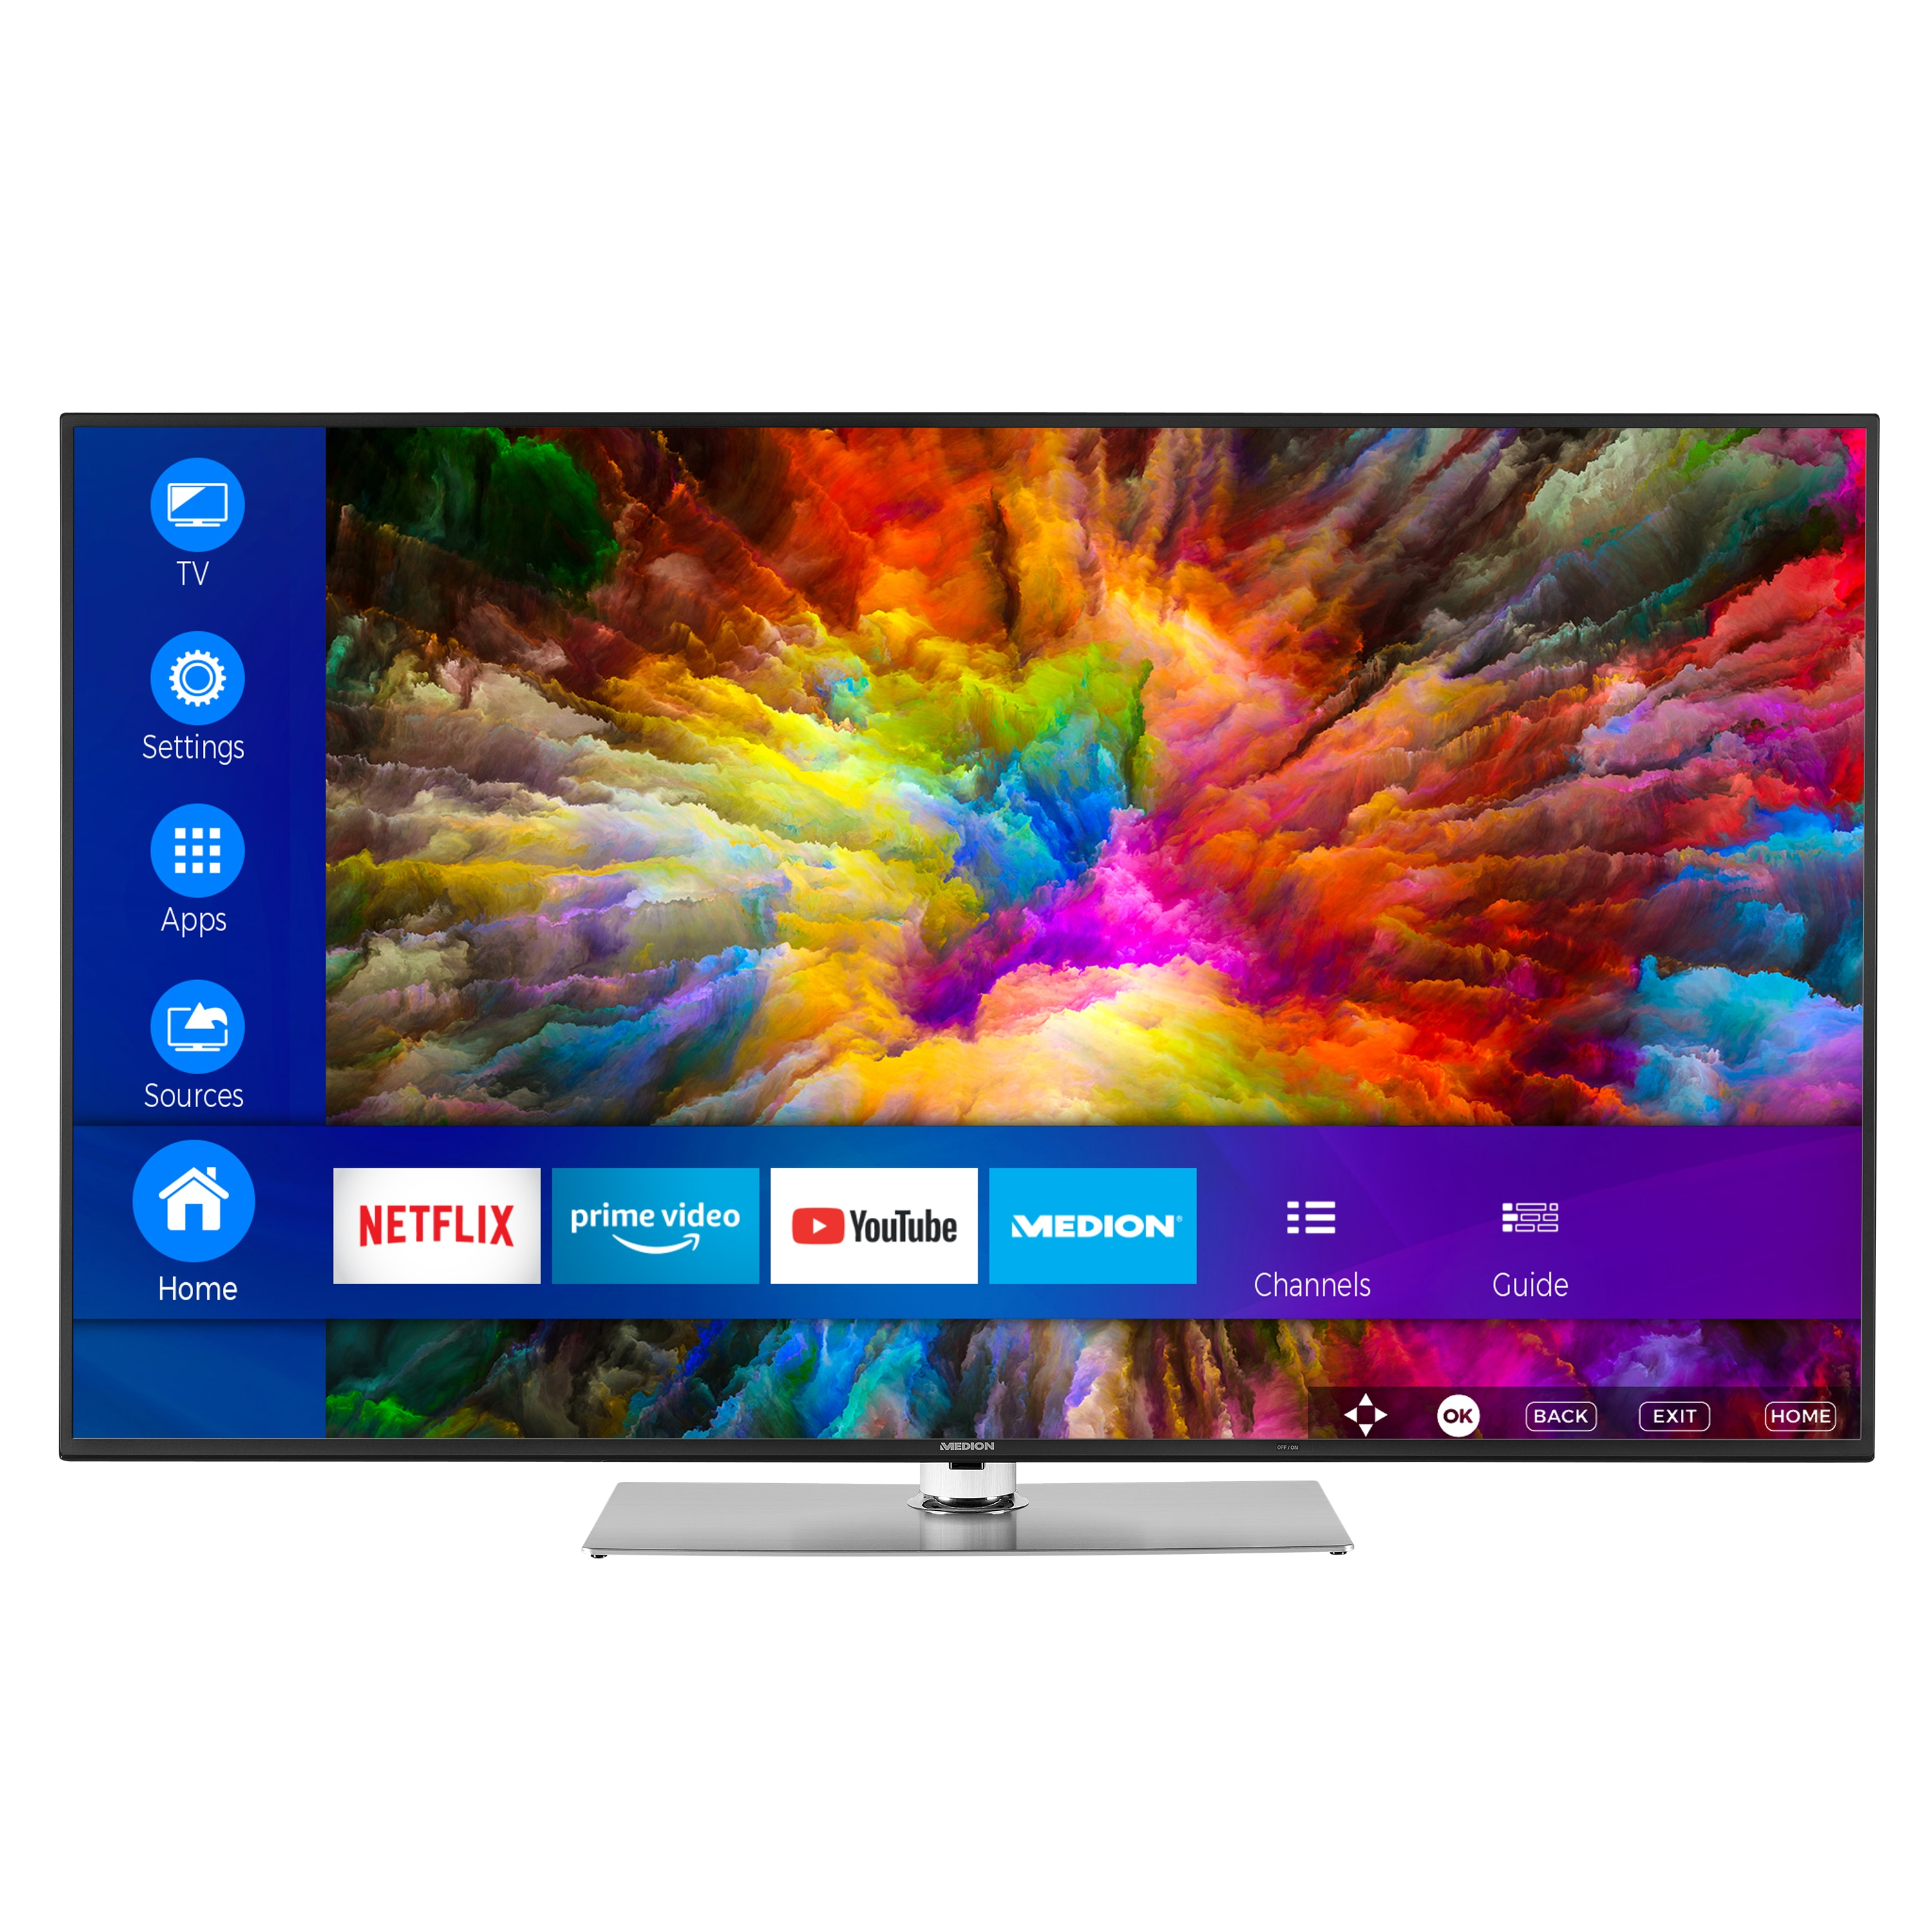 MEDION® LIFE® X16565 Smart-TV, 163,9 cm (65'') Ultra HD Display, HDR, Dolby Vision™, PVR ready, Netflix, Amazon Prime Video, Bluetooth®, DTS HD, HD Triple Tuner, CI+